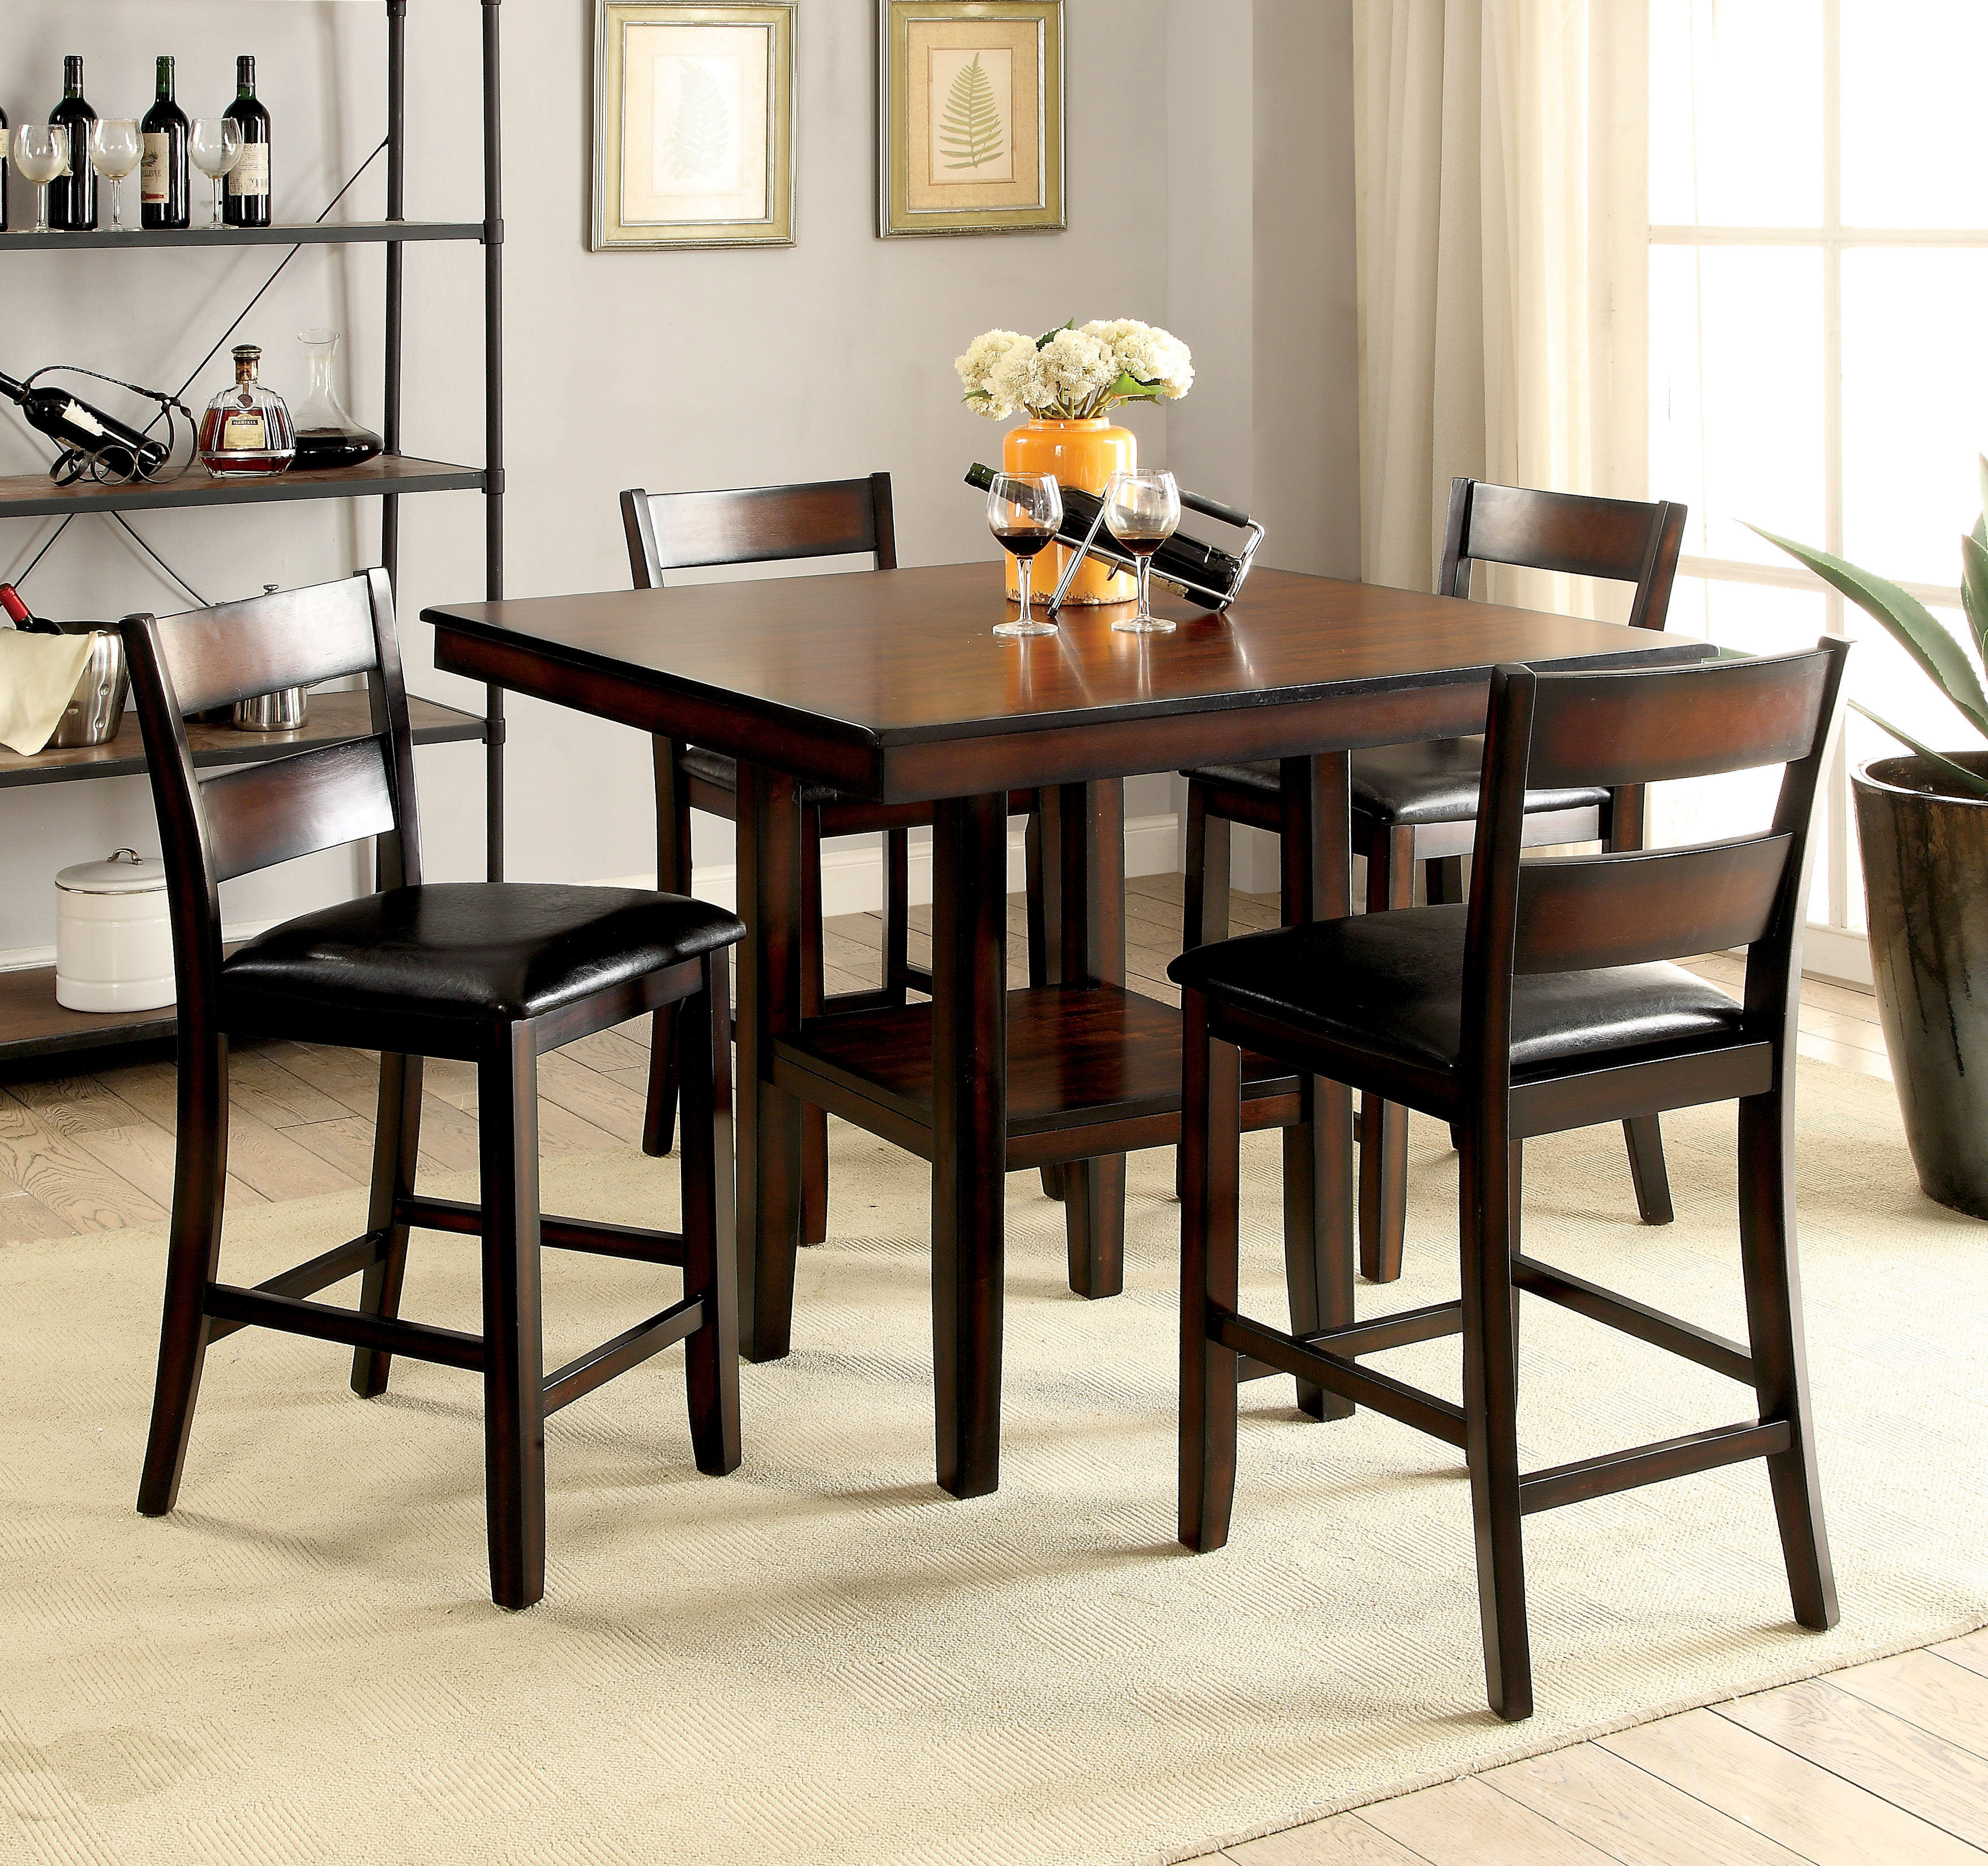 Inspiration about Red Barrel Studio Daphne 5 Piece Counter Height Dining Set & Reviews With Best And Newest Middleport 5 Piece Dining Sets (#19 of 20)